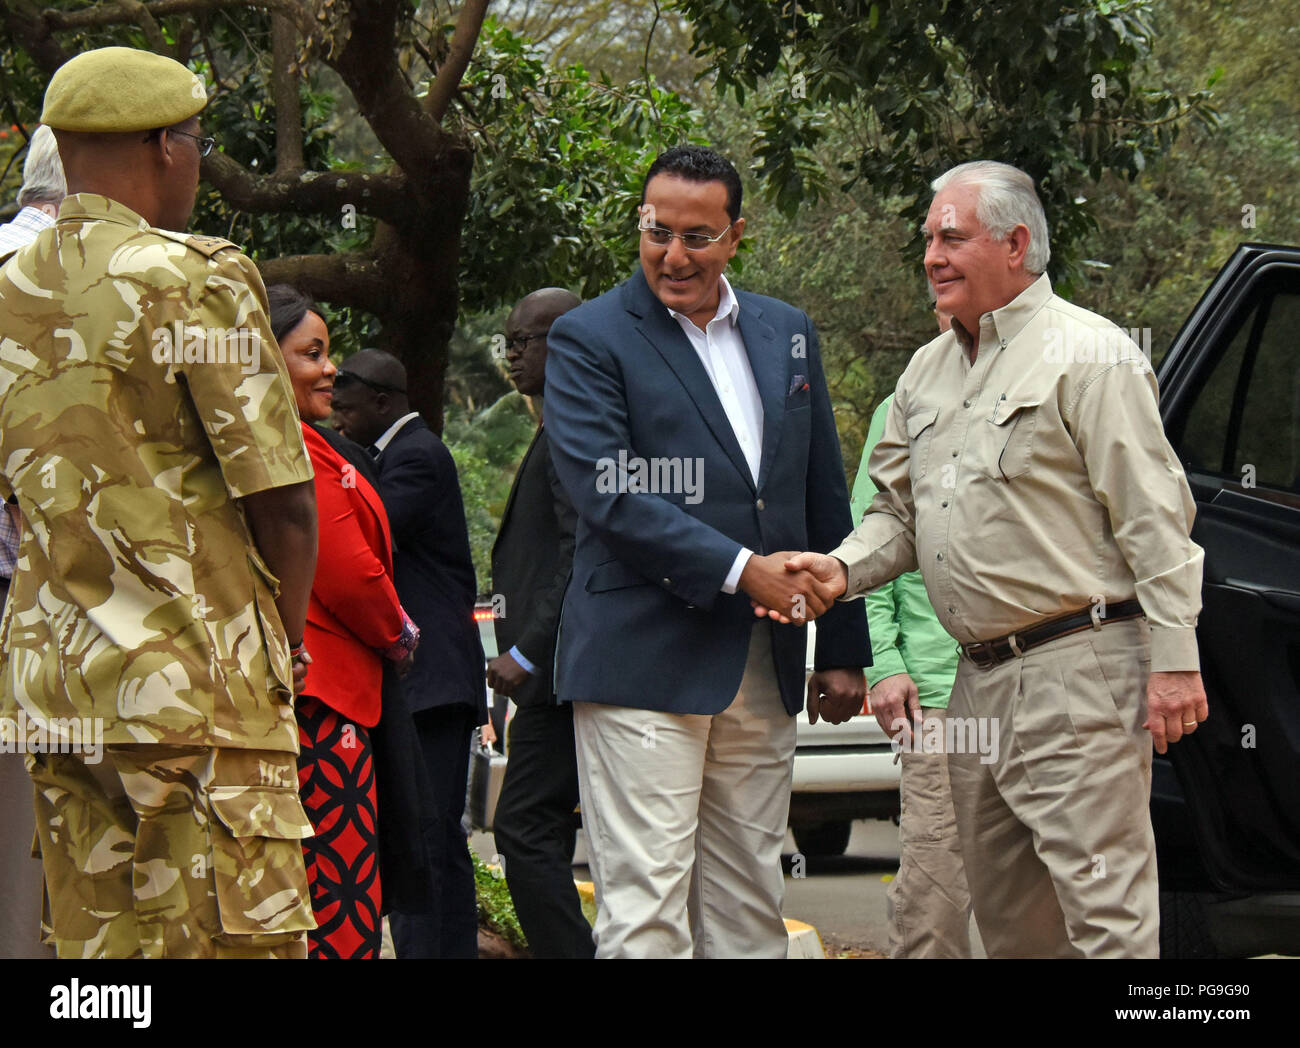 U.S. Secretary of State Rex Tillerson is welcomed to the Kenya Wildlife  Service headquarters by Kenya's